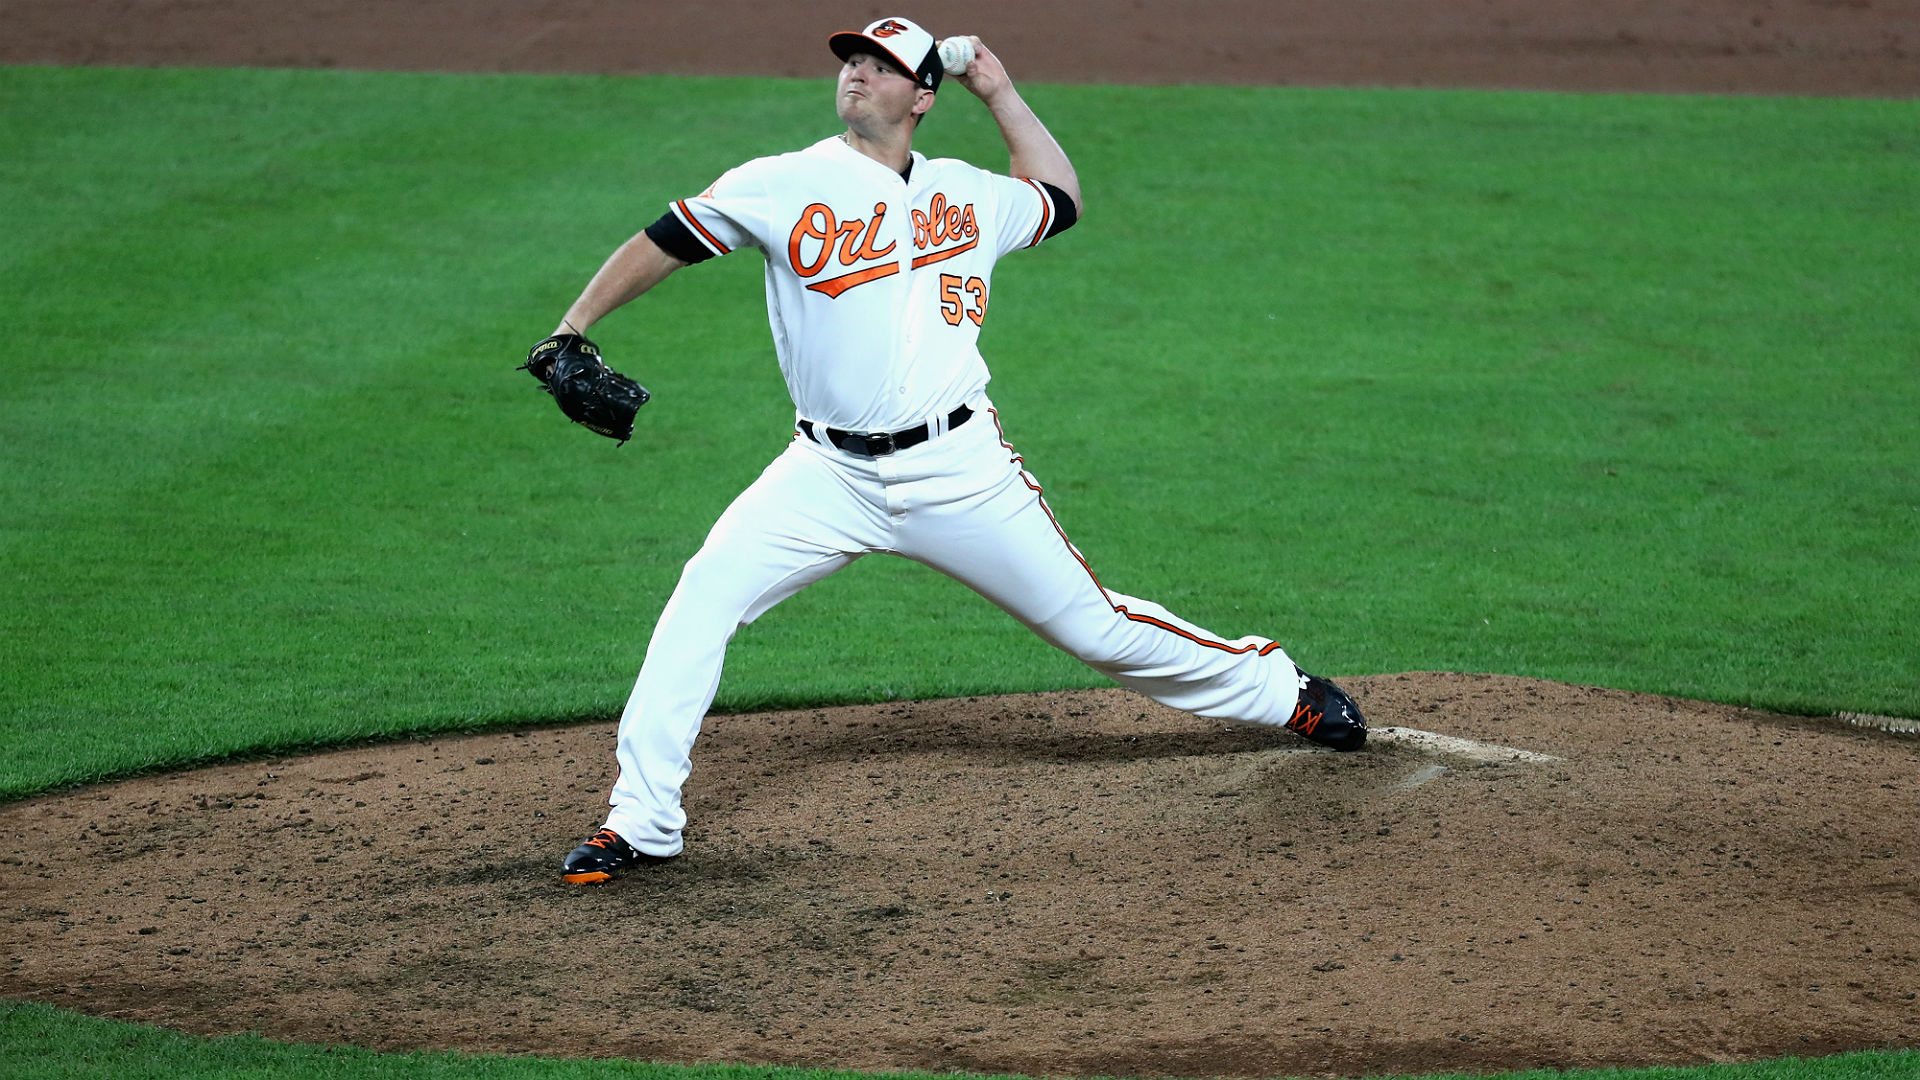 MLB trade rumors: Yankees interested in Orioles reliever Zach Britton